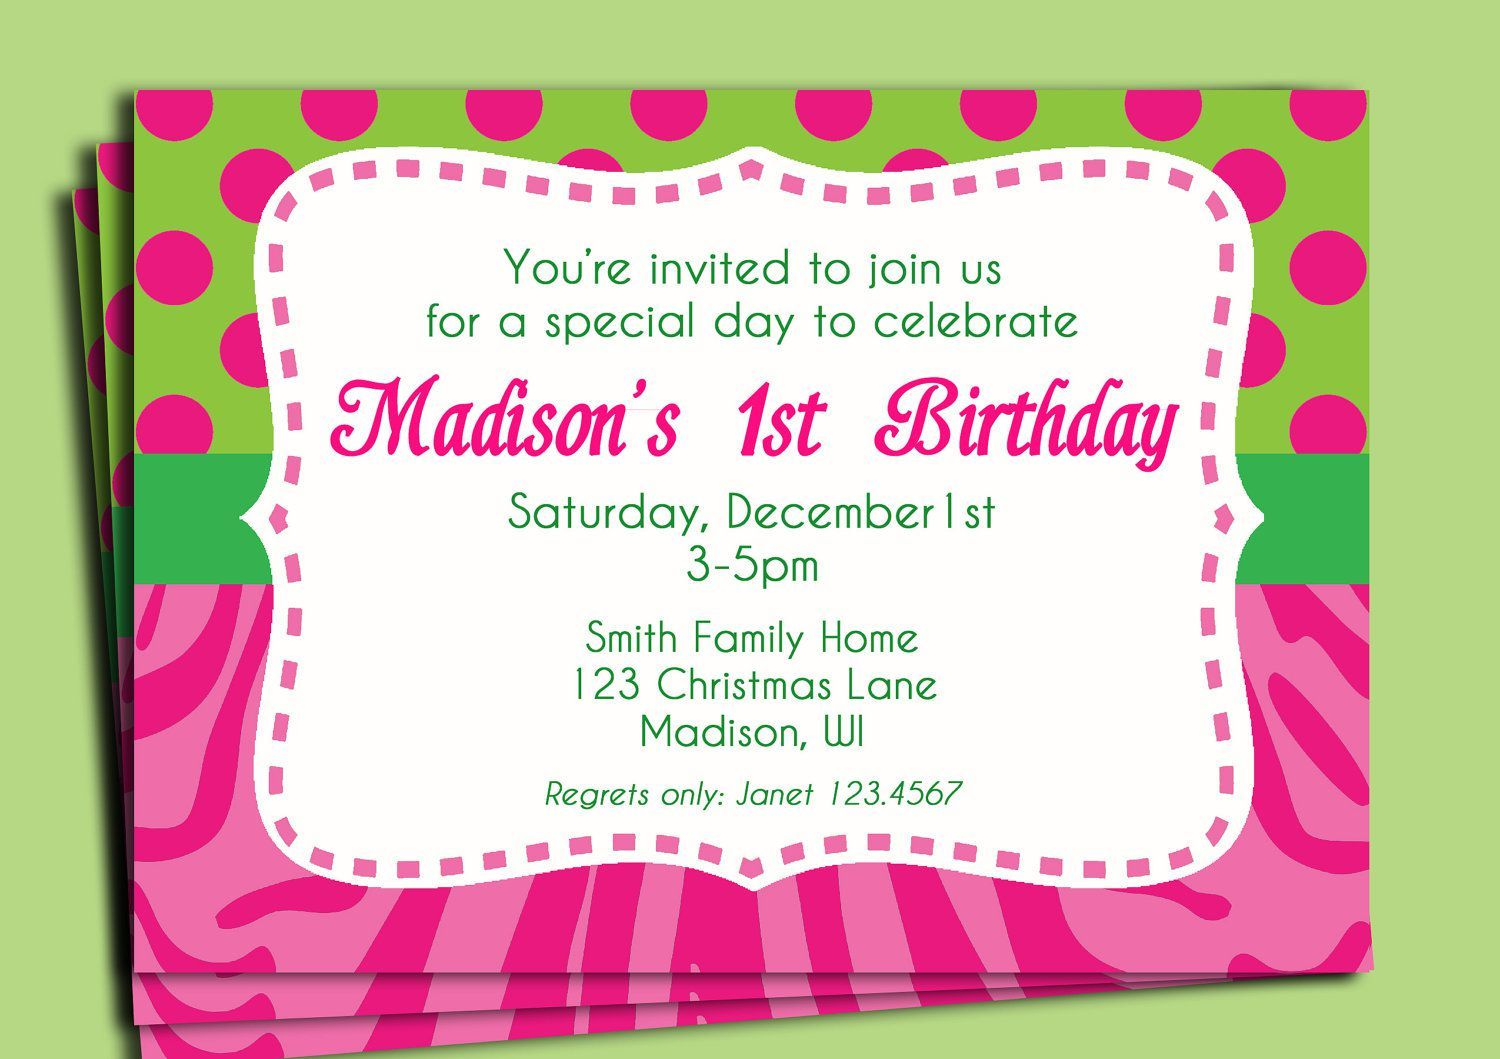 Birthday invitation wording for 11 year old birthday invitations birthday invitation wording for 11 year old filmwisefo Gallery